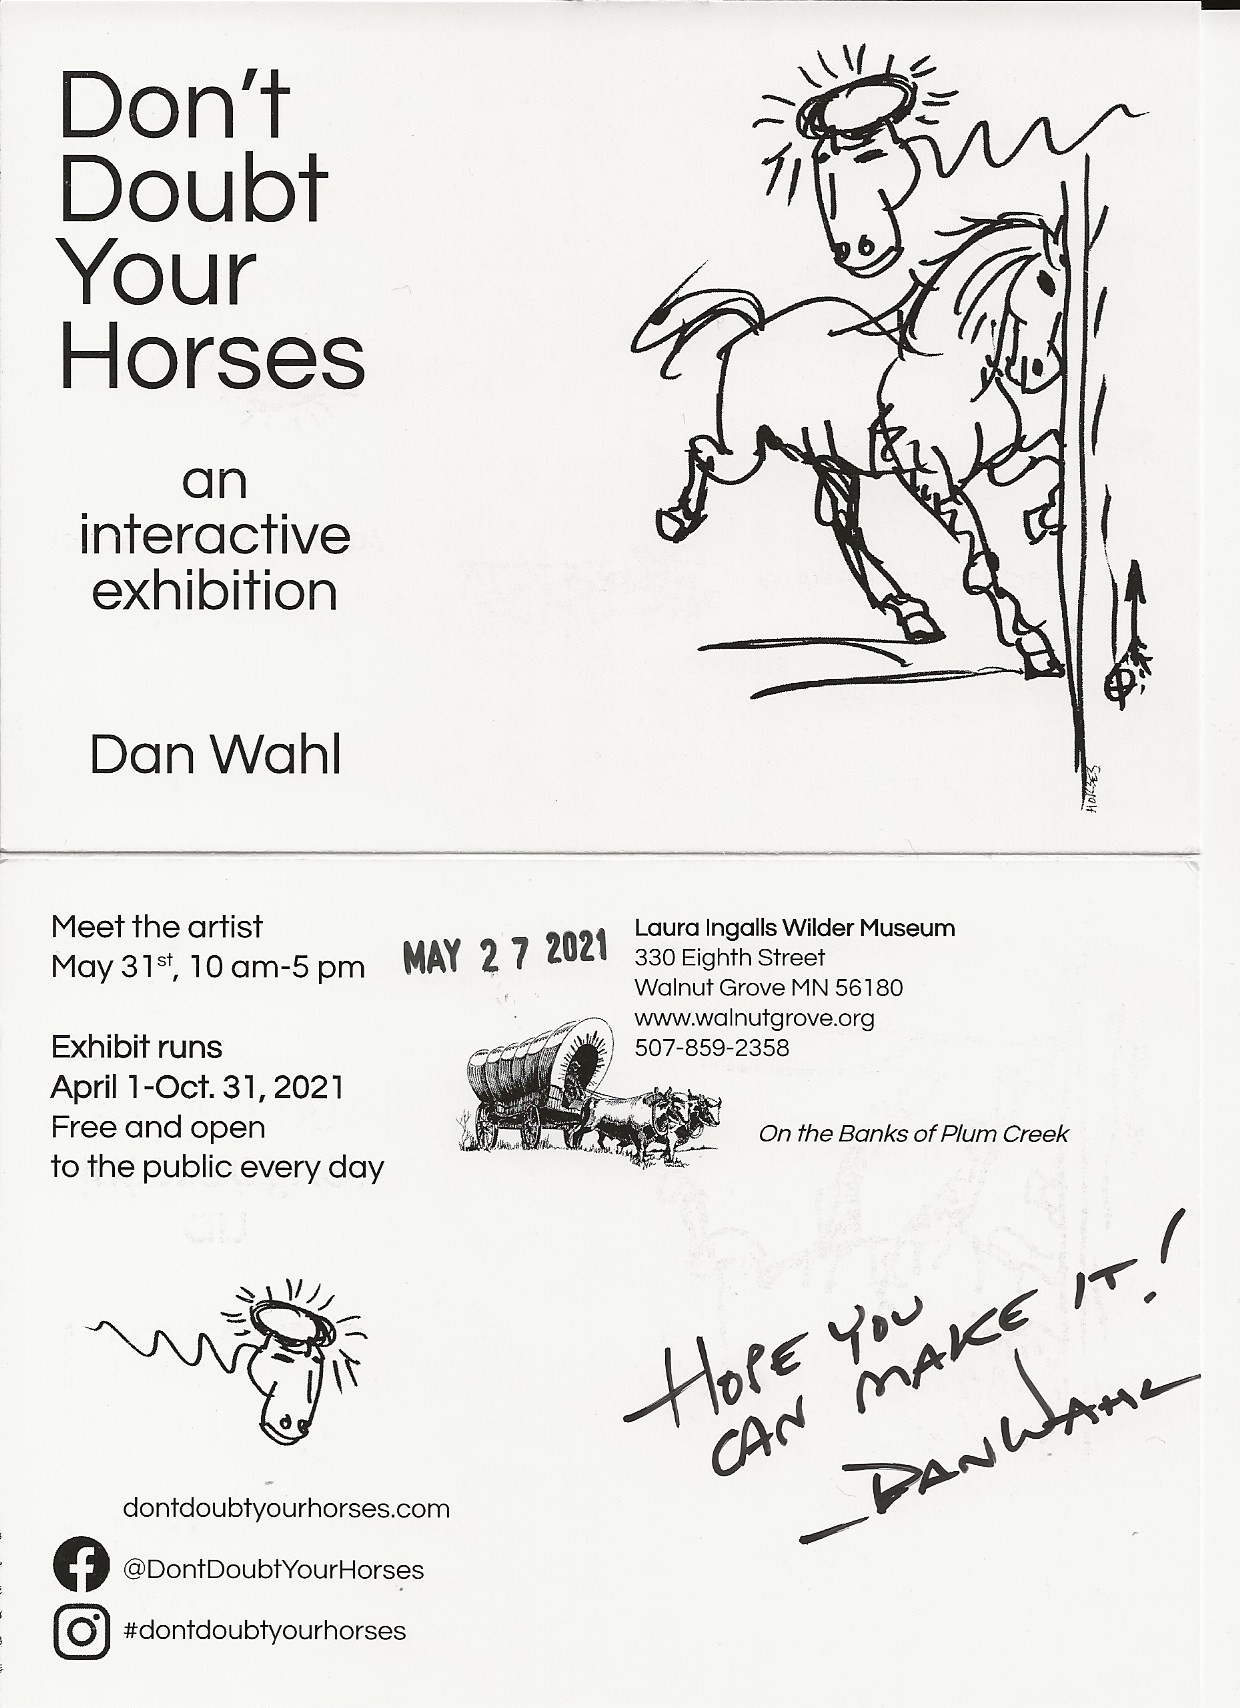 Scan of post card invite to exhibition. Most text appears in body of event text. Also has hand written note from Dan Wahl: